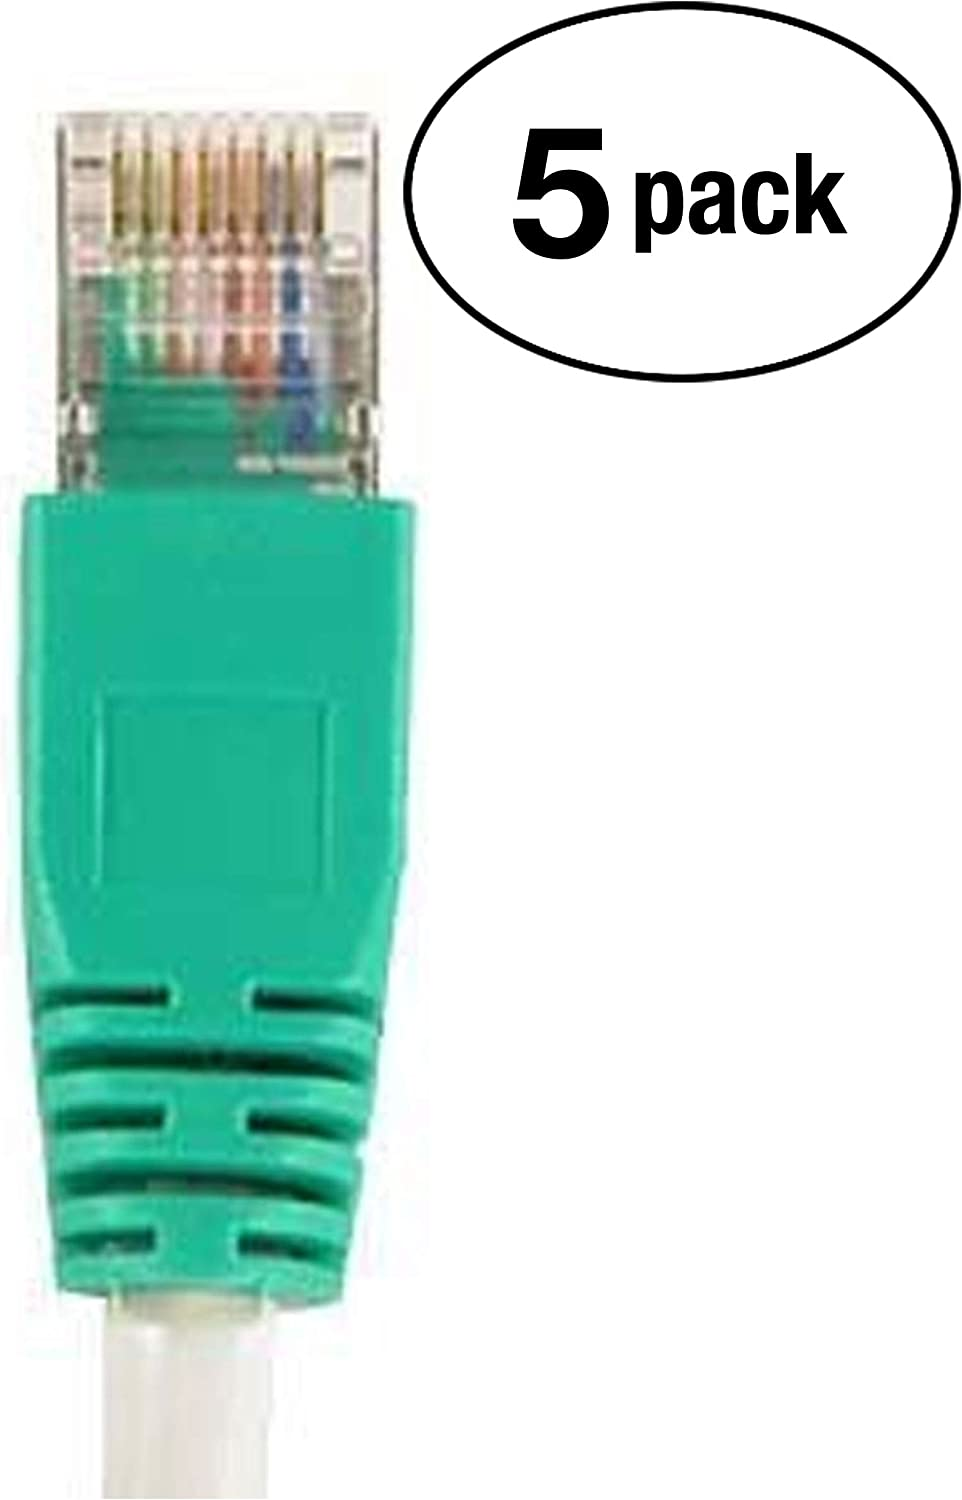 InstallerParts Ethernet Cable CAT5E Cable UTP Crossover 1 FT Professional Series 350MHZ 5 Pack Gray w//Green End 1Gigabit//Sec Network//Internet Cable